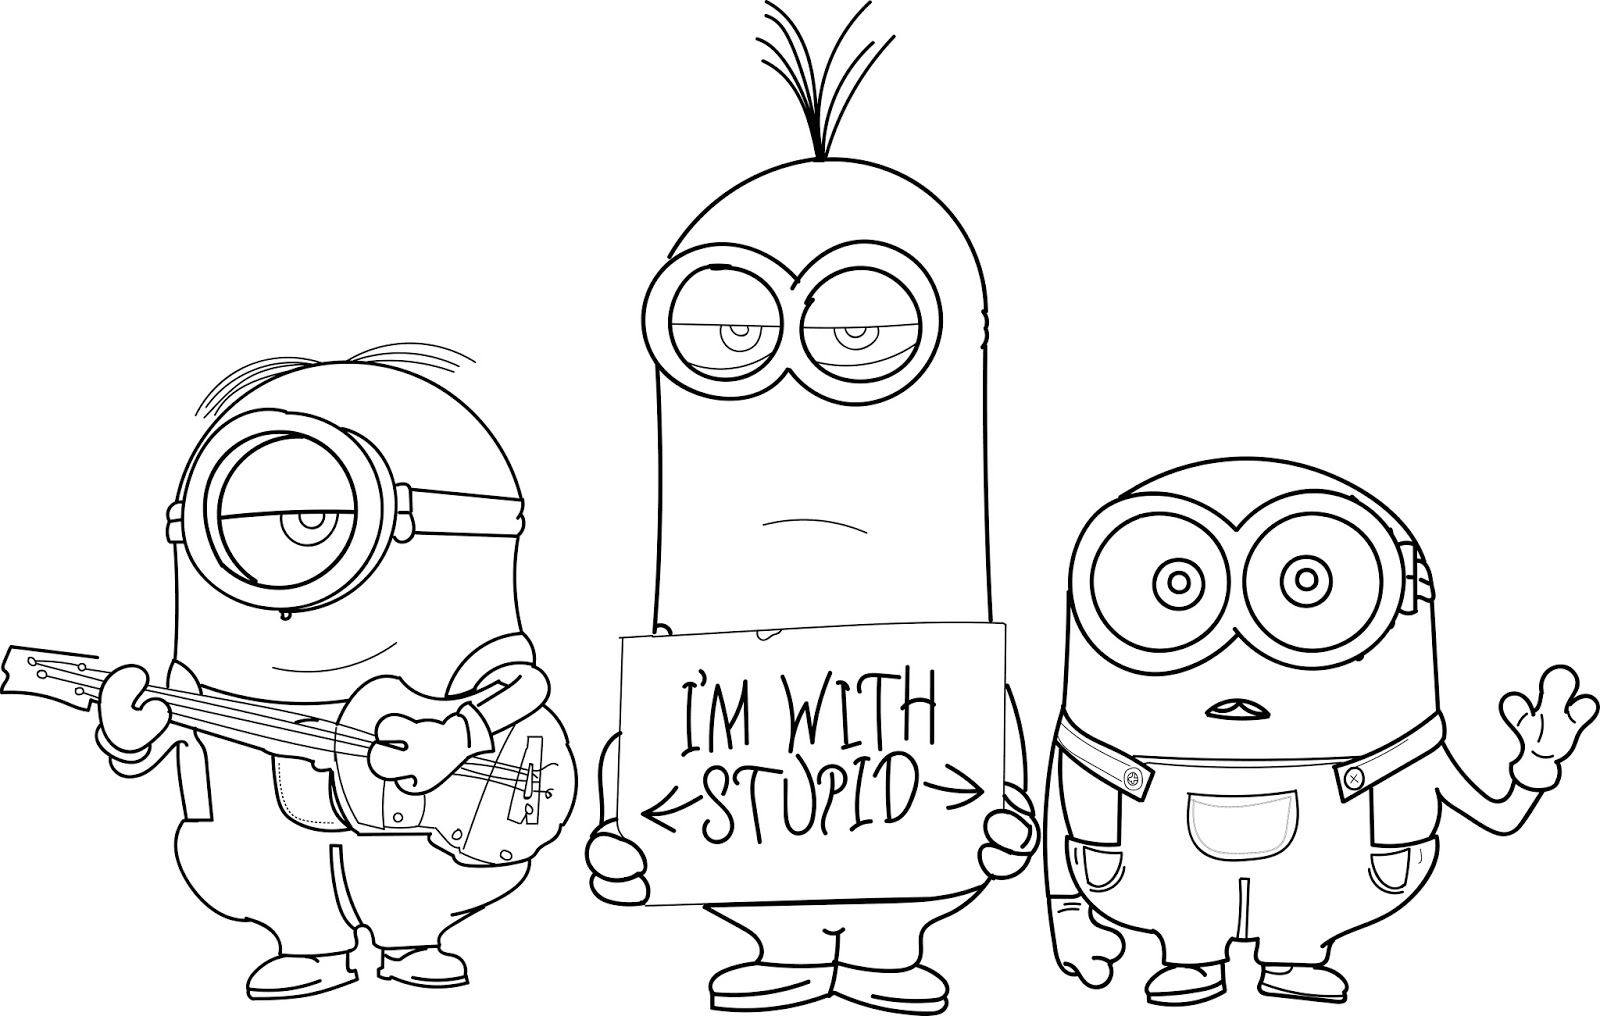 Download Sketsa Gambar Minion Aliransket